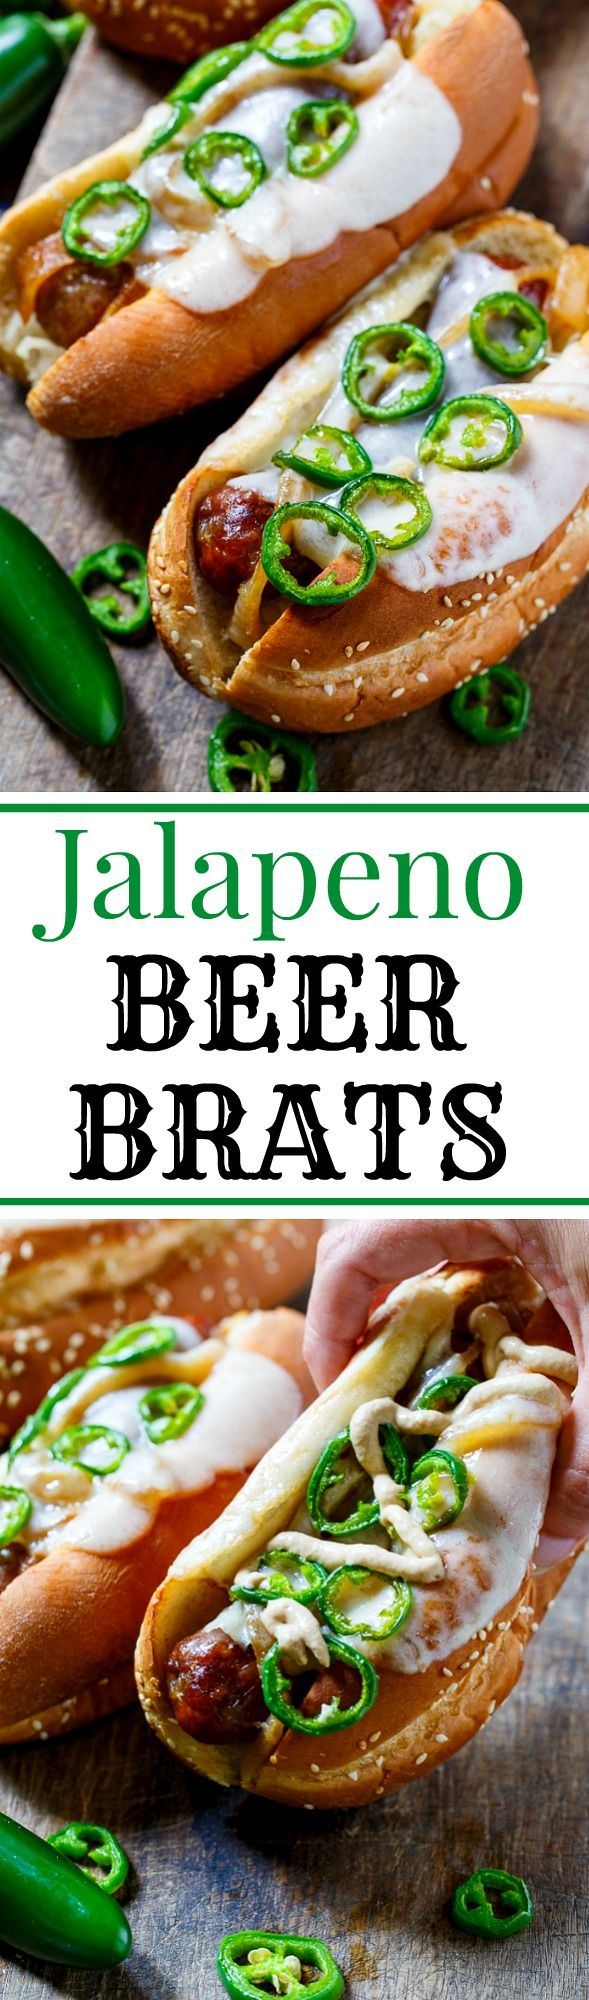 Jalapeno Beer Brats with Melted Swiss cheese and caramelized onions. Grilled to perfection! #sponsored #sausagefamily